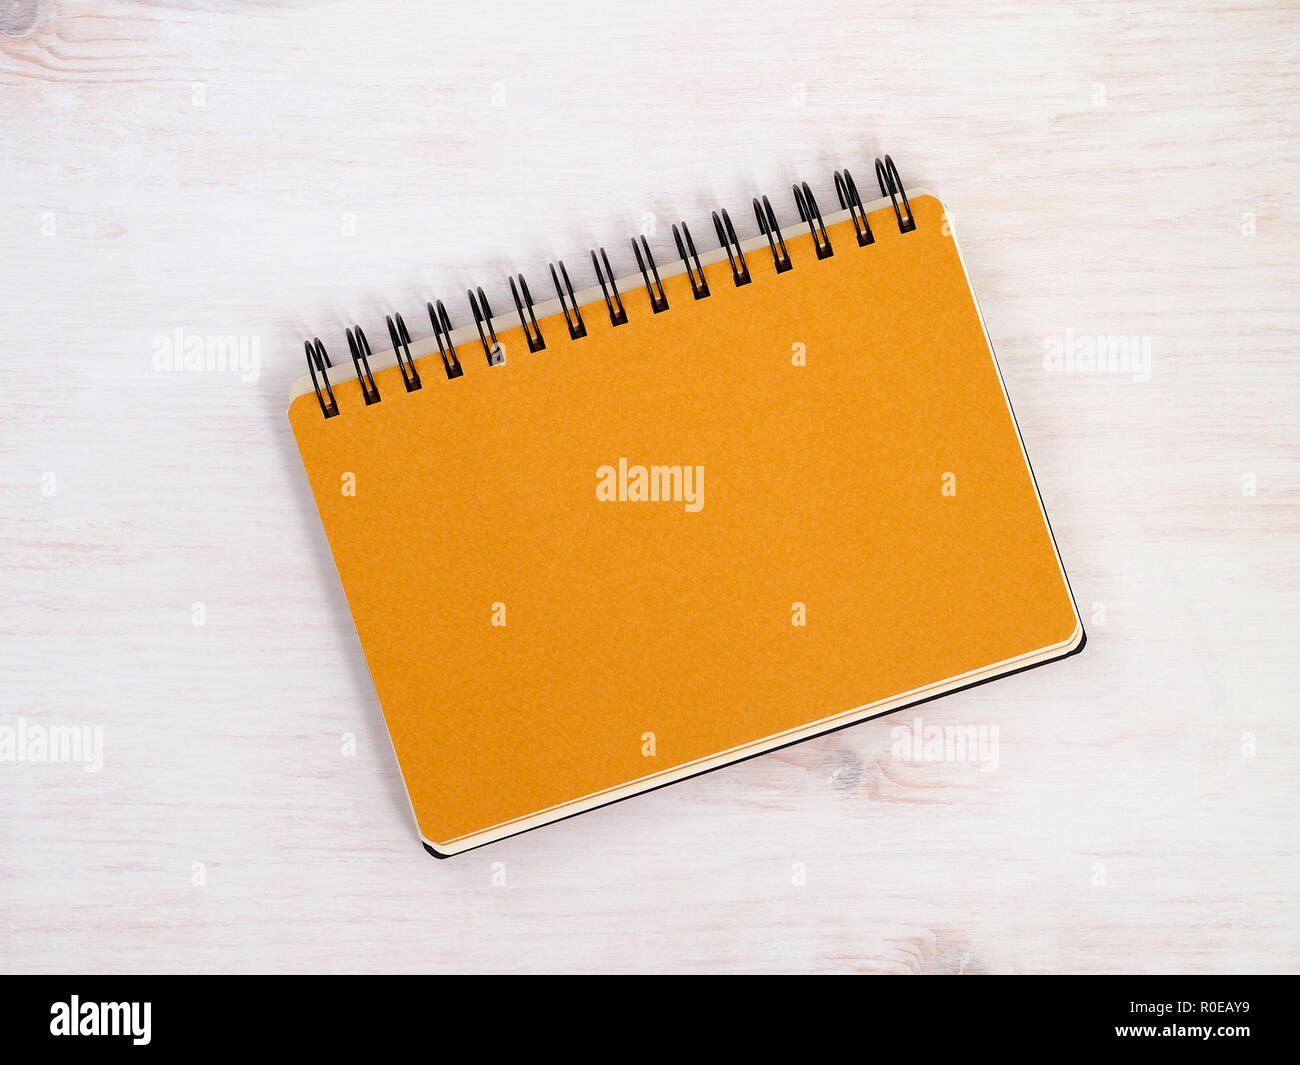 Spiral notebook with orange page divider on white wooden table. Top view. - Stock Image